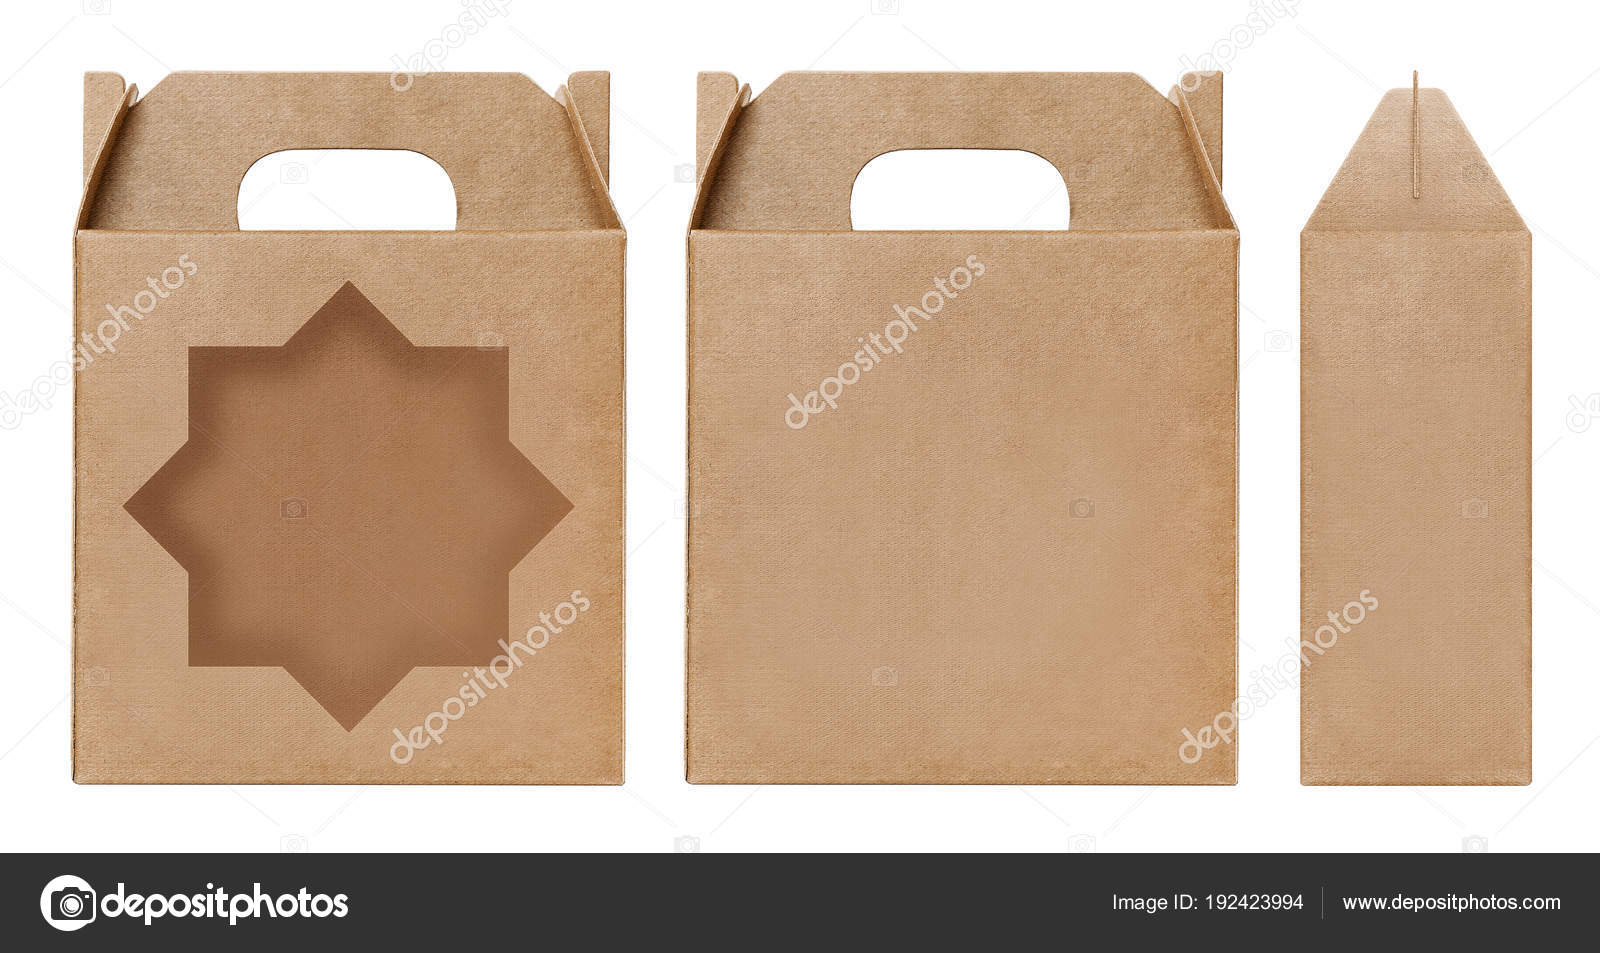 Box Brown Window Star Shape Cut Out Packaging Template Empty Stock Photo